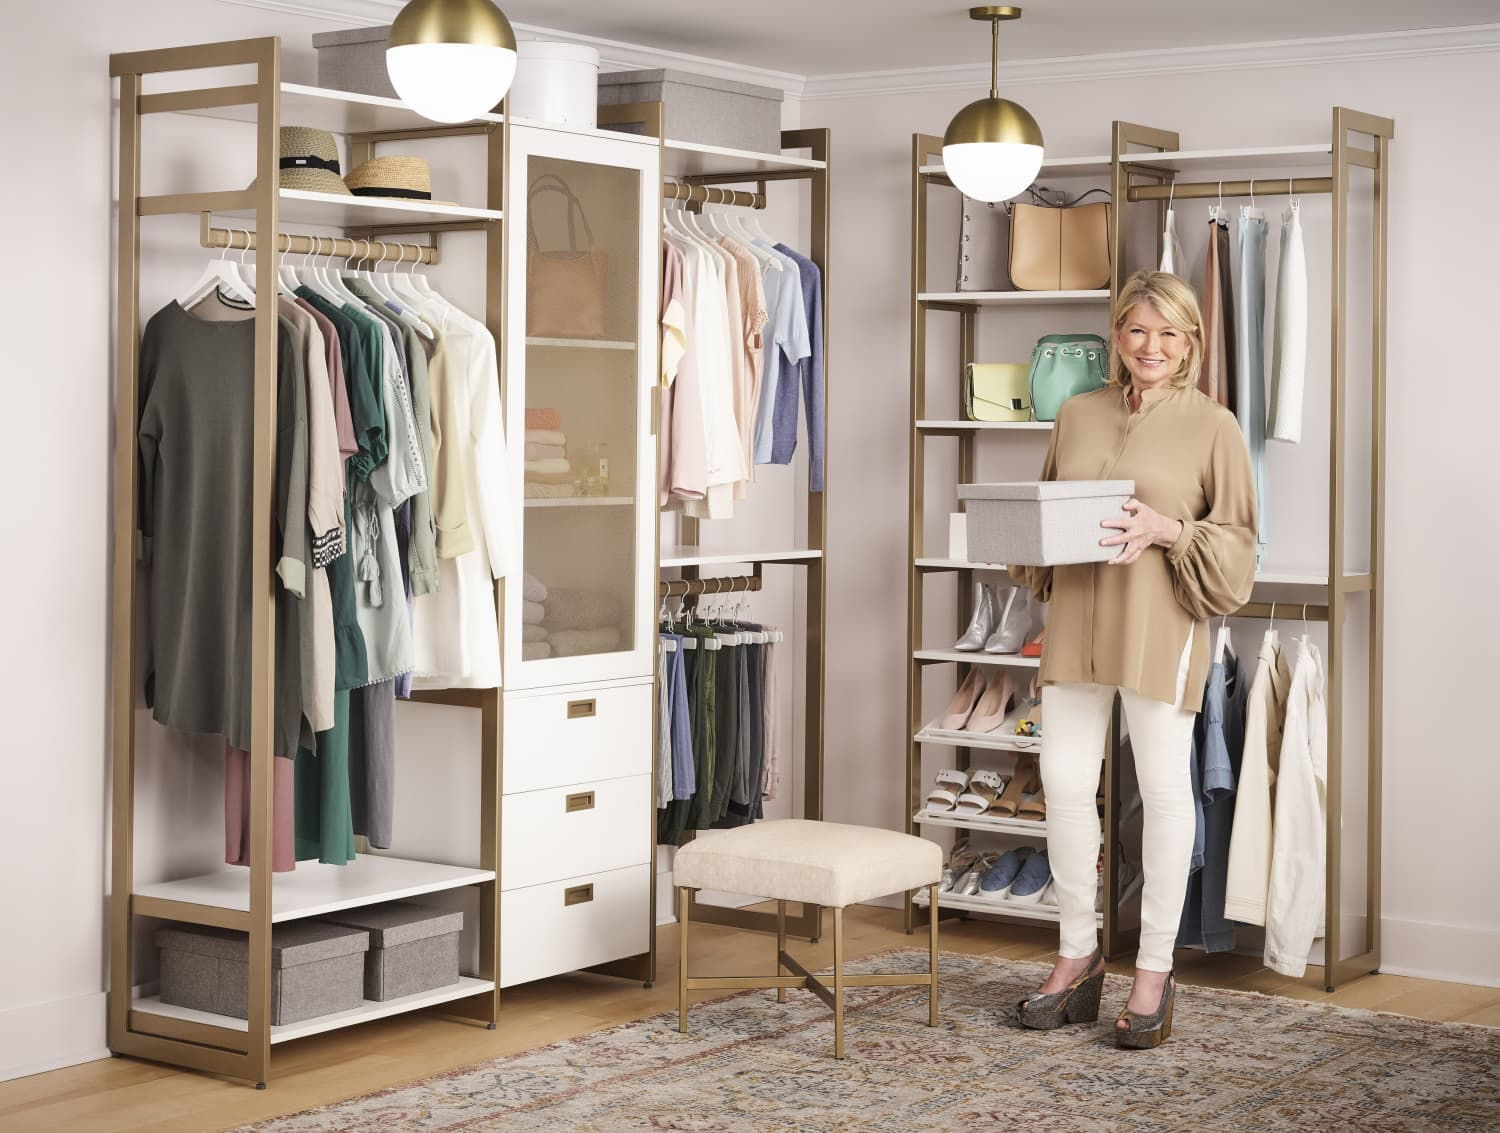 Martha Stewart Just Launched a Closet and Storage Collection Geared Toward Renters